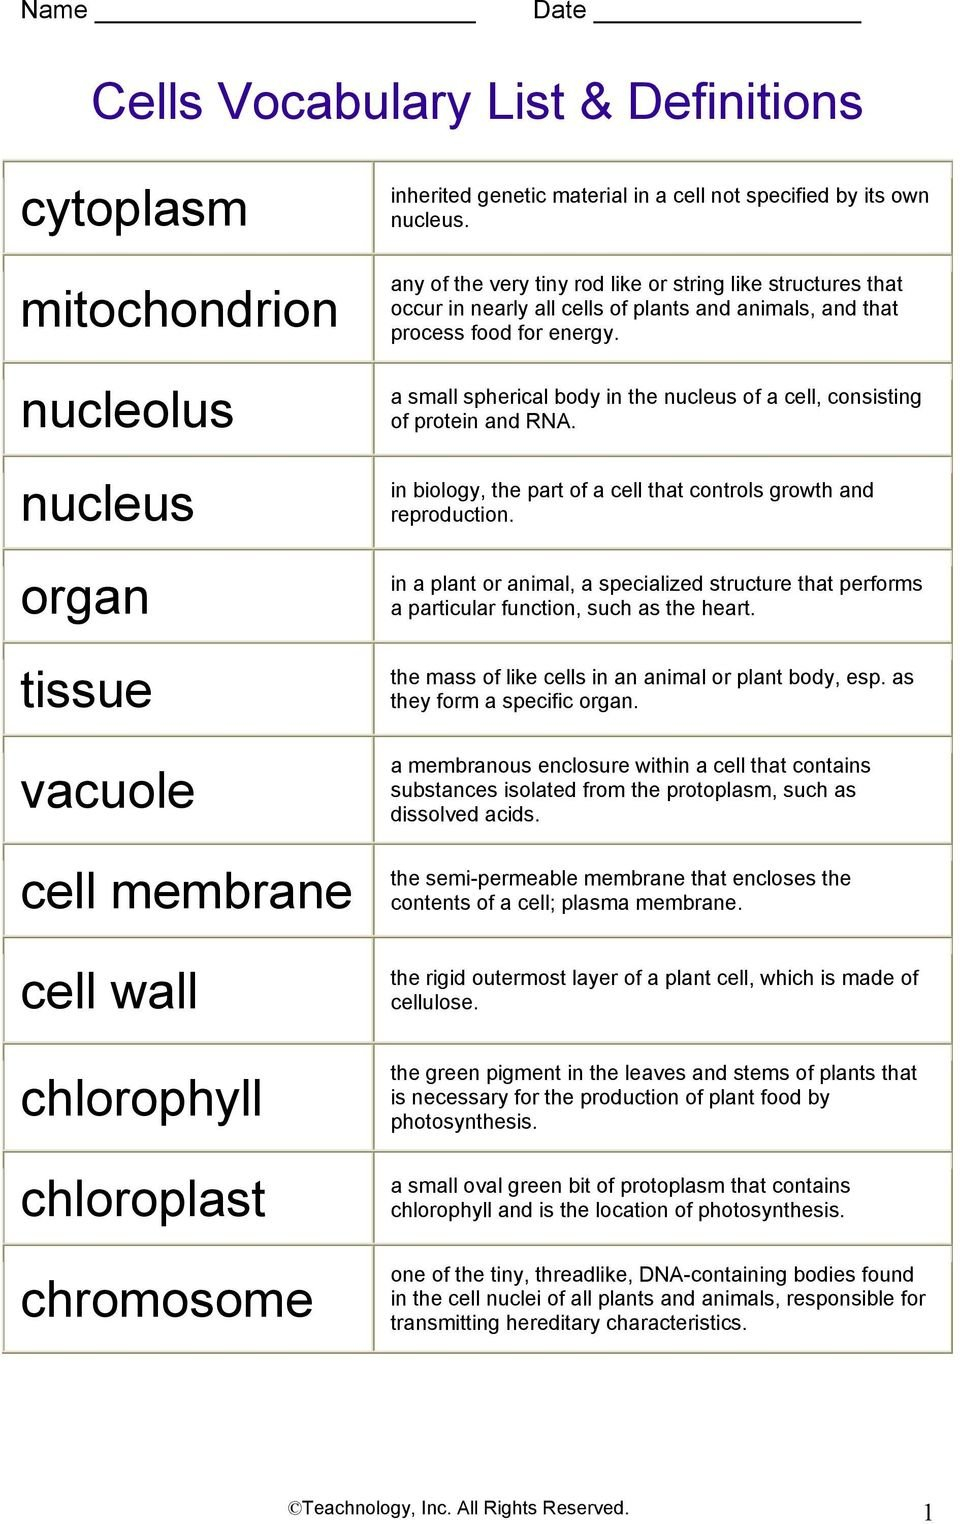 Cells Vocabulary List  Definitions  Pdf Throughout Cells Vocabulary Quiz Worksheet Answers